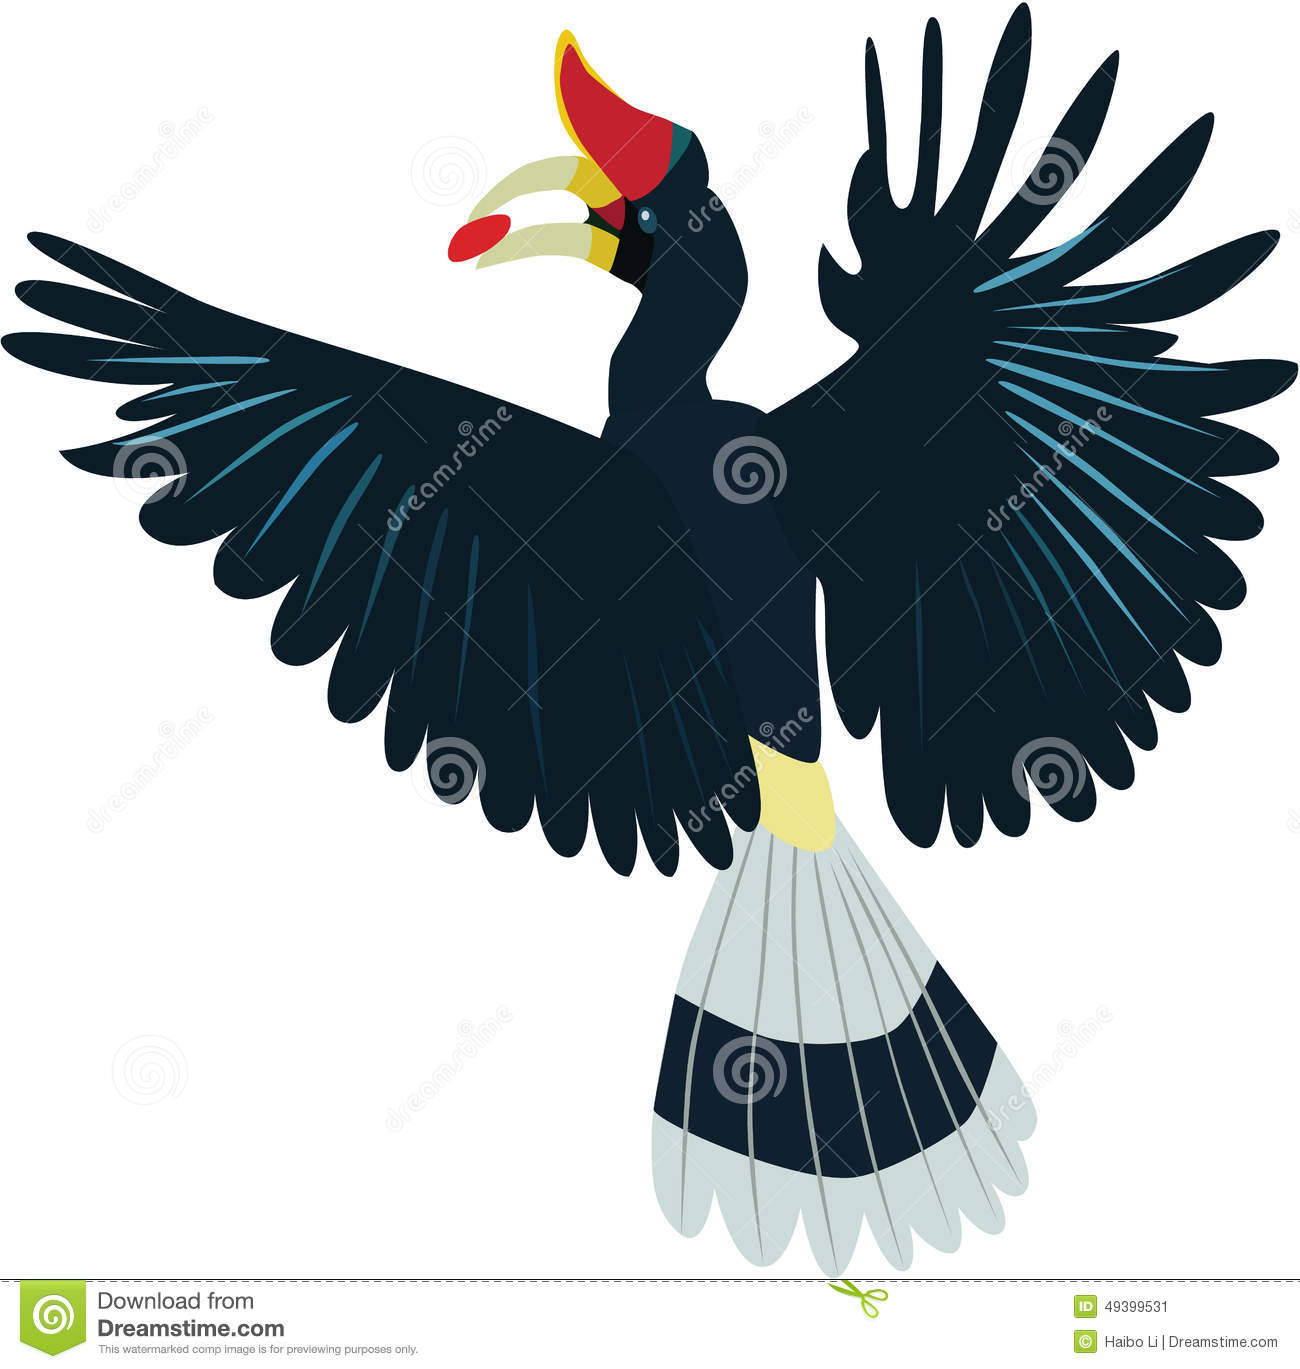 Rhinoceros Hornbill clipart #3, Download drawings